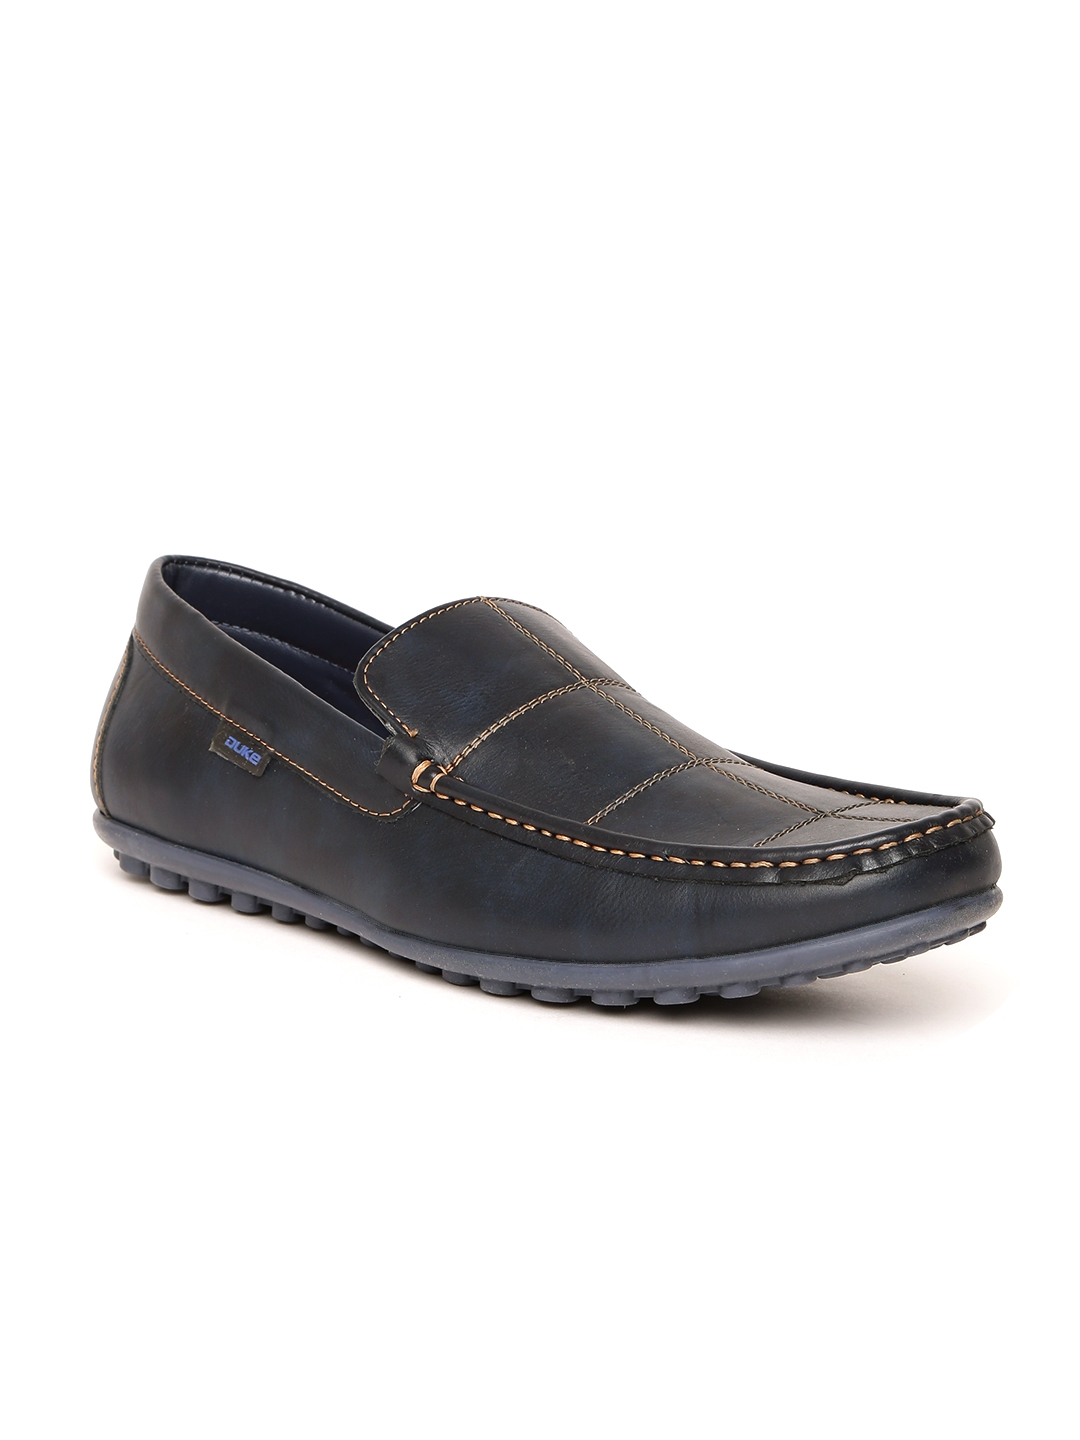 d27c69d3fdcb Buy Duke Men Navy Blue Loafers - Casual Shoes for Men 2403658